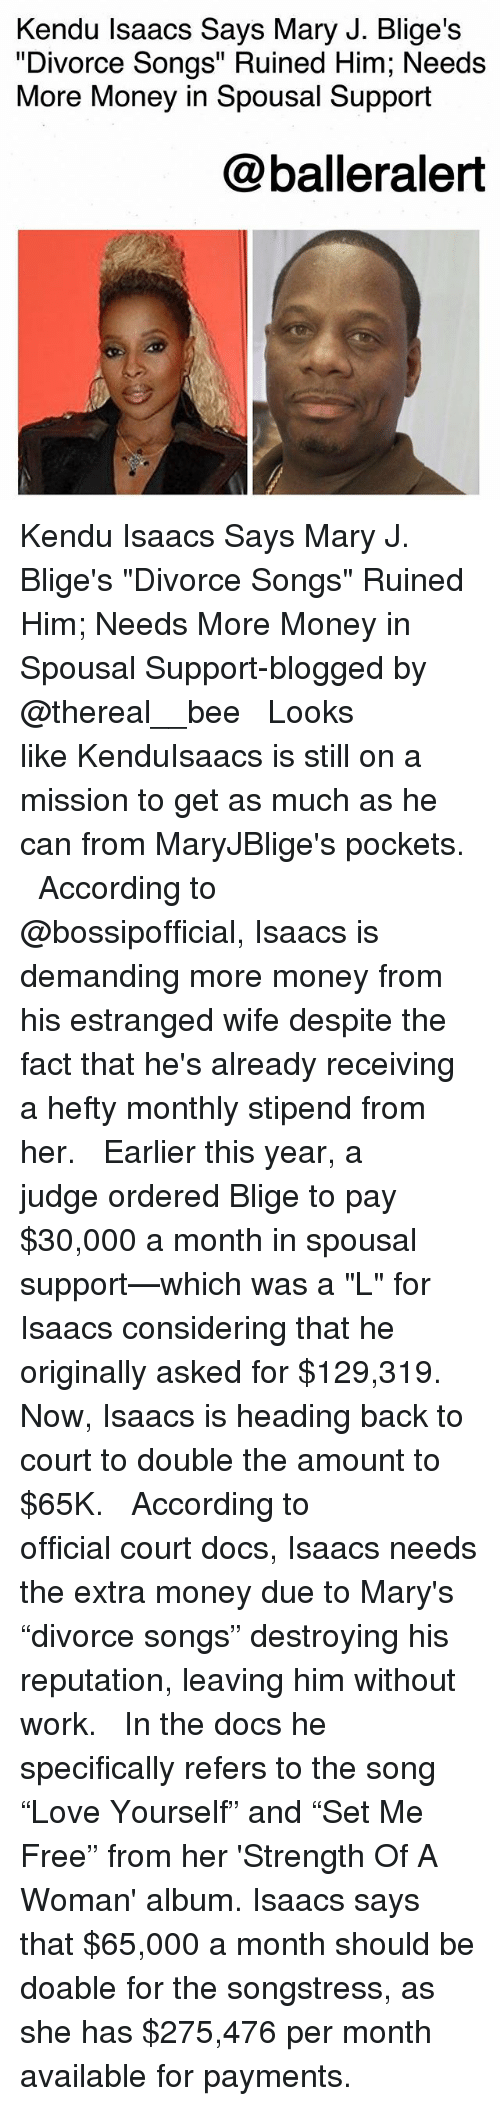 "Memes, Money, and Work: Kendu Isaacs Says Mary J. Blige's  ""Divorce Songs"" Ruined Him; Needs  More Money in Spousal Support  @balleralert Kendu Isaacs Says Mary J. Blige's ""Divorce Songs"" Ruined Him; Needs More Money in Spousal Support-blogged by @thereal__bee ⠀⠀⠀⠀⠀⠀⠀⠀⠀ ⠀⠀ Looks like KenduIsaacs is still on a mission to get as much as he can from MaryJBlige's pockets. ⠀⠀⠀⠀⠀⠀⠀⠀⠀ ⠀⠀ According to @bossipofficial, Isaacs is demanding more money from his estranged wife despite the fact that he's already receiving a hefty monthly stipend from her. ⠀⠀⠀⠀⠀⠀⠀⠀⠀ ⠀⠀ Earlier this year, a judge ordered Blige to pay $30,000 a month in spousal support—which was a ""L"" for Isaacs considering that he originally asked for $129,319. Now, Isaacs is heading back to court to double the amount to $65K. ⠀⠀⠀⠀⠀⠀⠀⠀⠀ ⠀⠀ According to official court docs, Isaacs needs the extra money due to Mary's ""divorce songs"" destroying his reputation, leaving him without work. ⠀⠀⠀⠀⠀⠀⠀⠀⠀ ⠀⠀ In the docs he specifically refers to the song ""Love Yourself"" and ""Set Me Free"" from her 'Strength Of A Woman' album. Isaacs says that $65,000 a month should be doable for the songstress, as she has $275,476 per month available for payments."